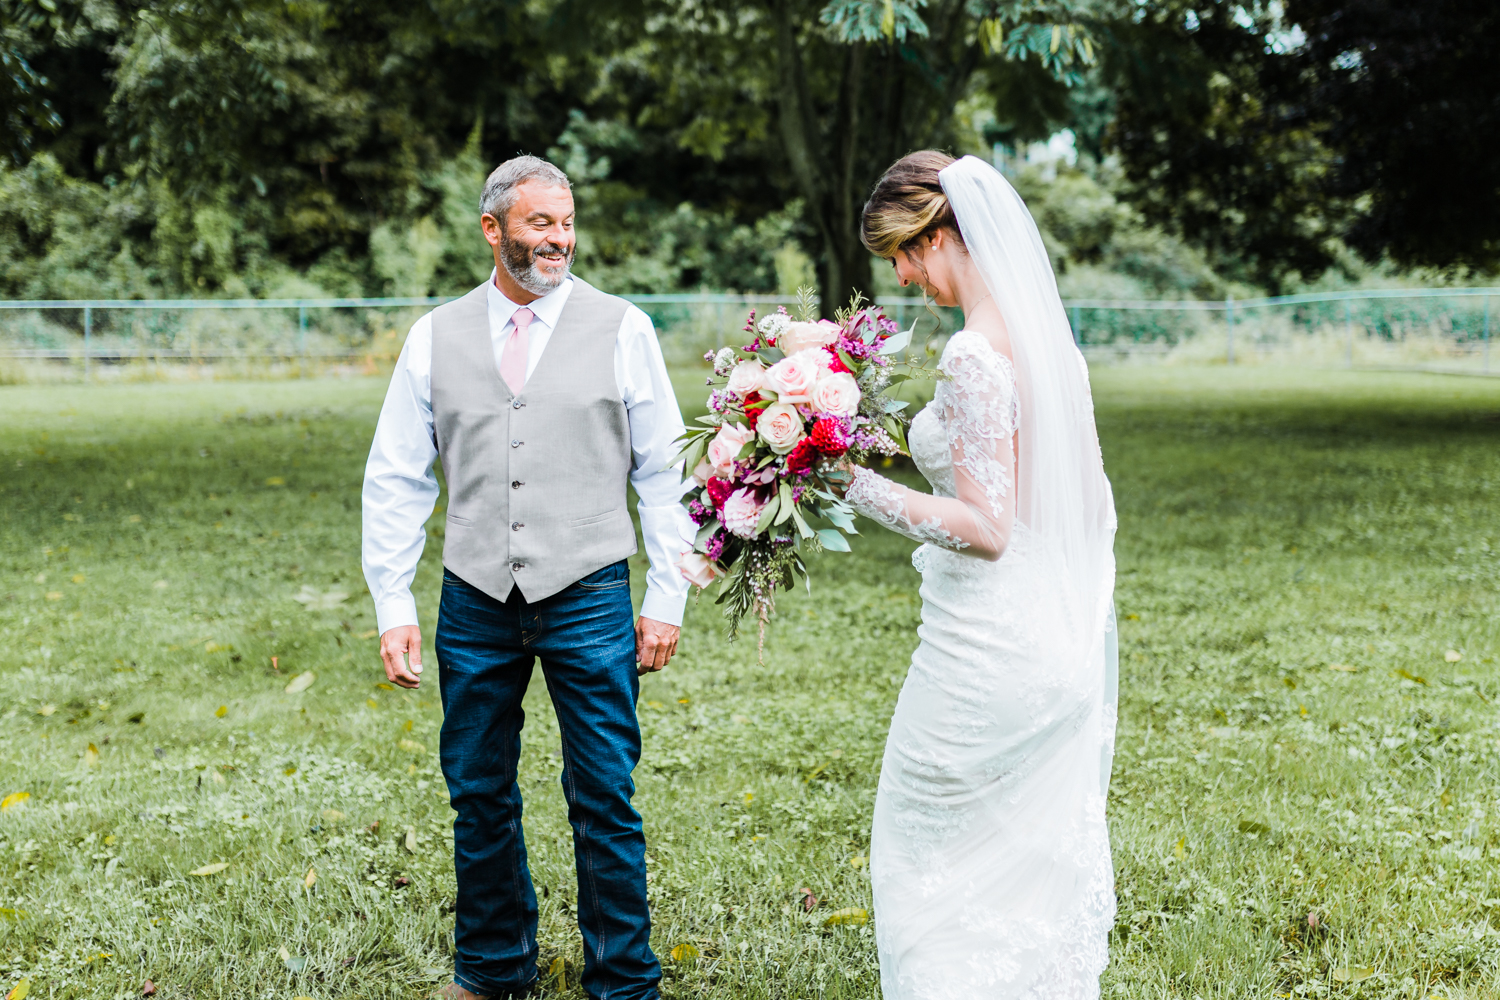 Maryland wedding photo and video - husband and wife team - bride and dad first look